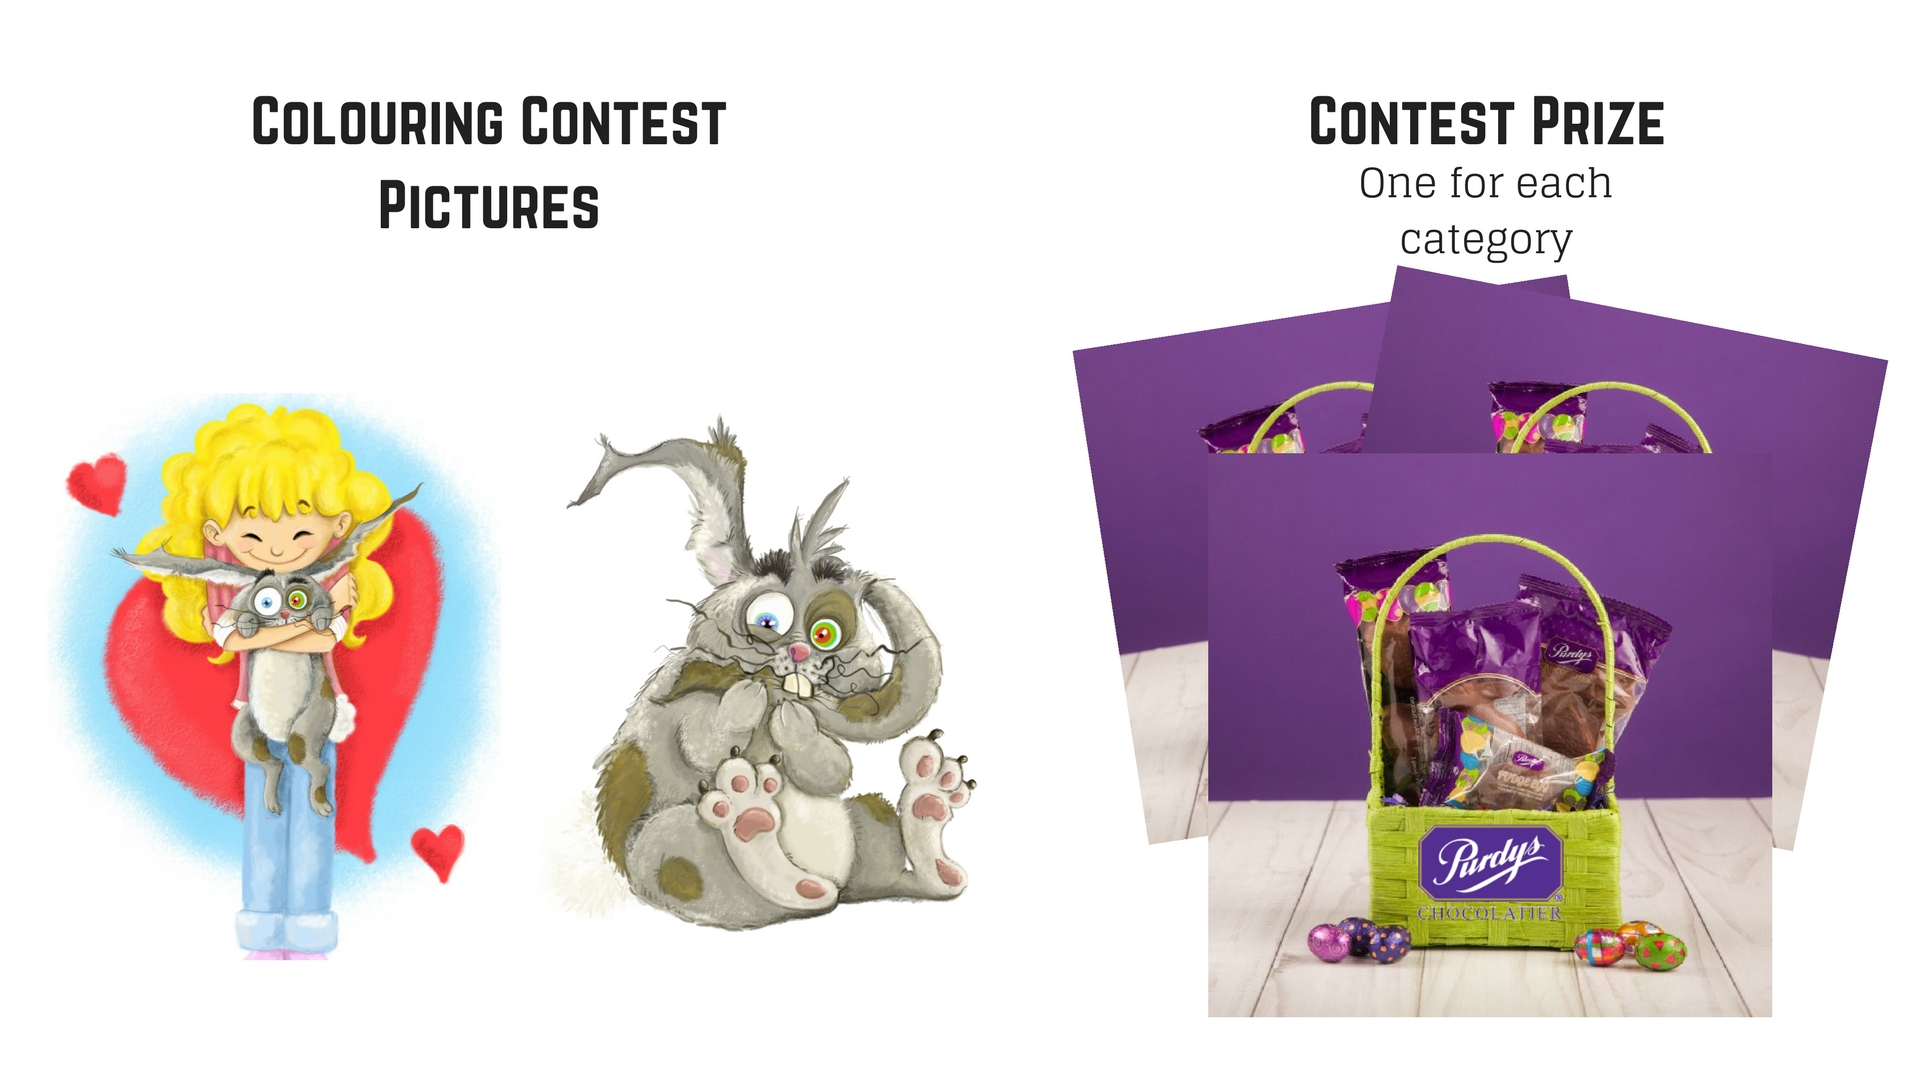 Contest Pictures and Prizes